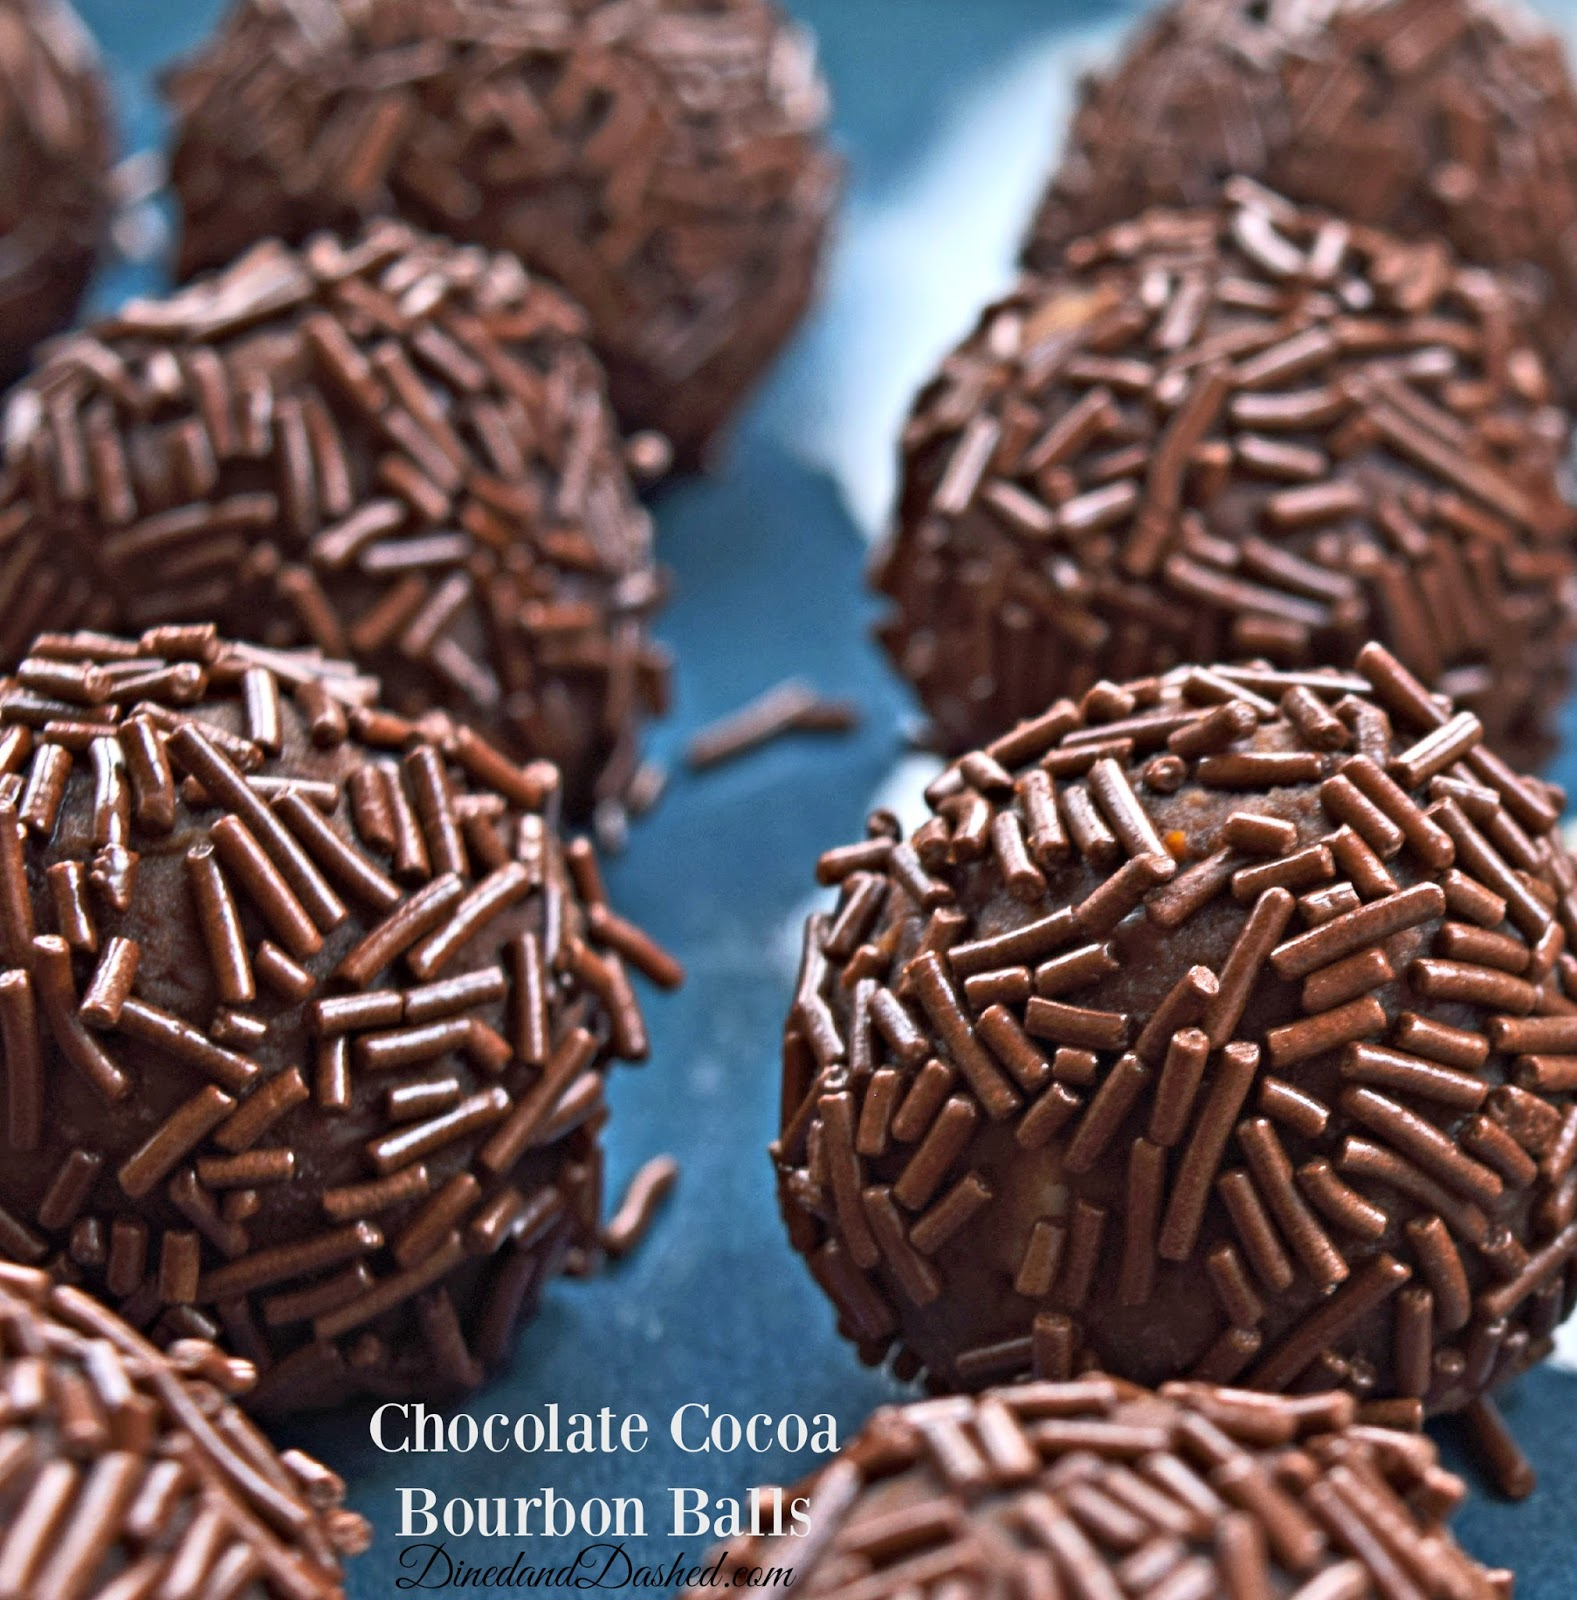 Chocolate Cocoa Bourbon Balls | Dined and Dashed